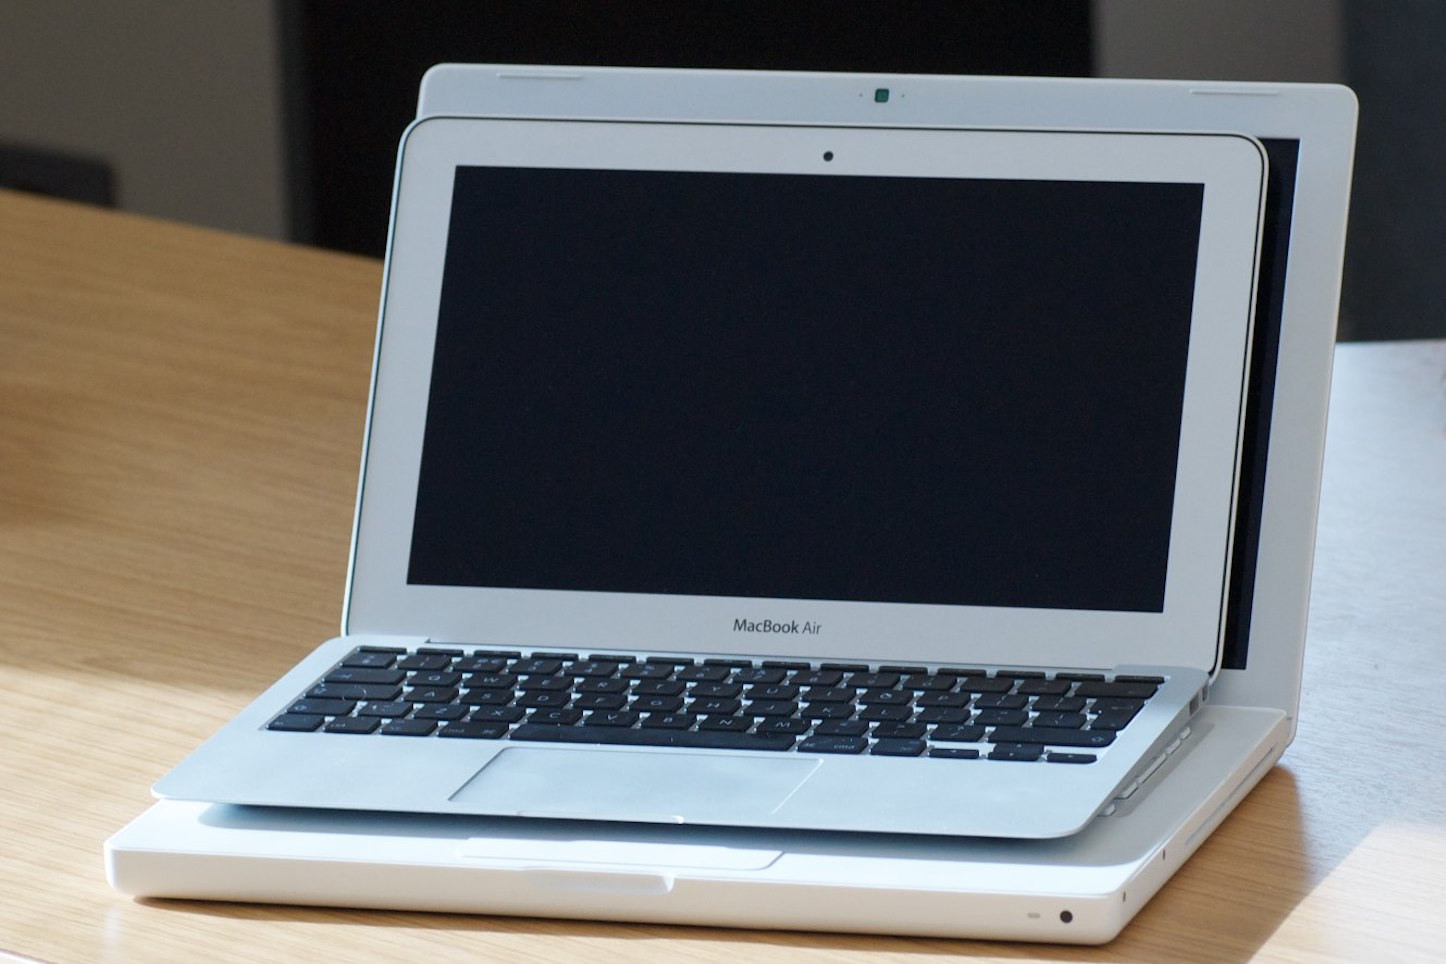 Macbook air compare